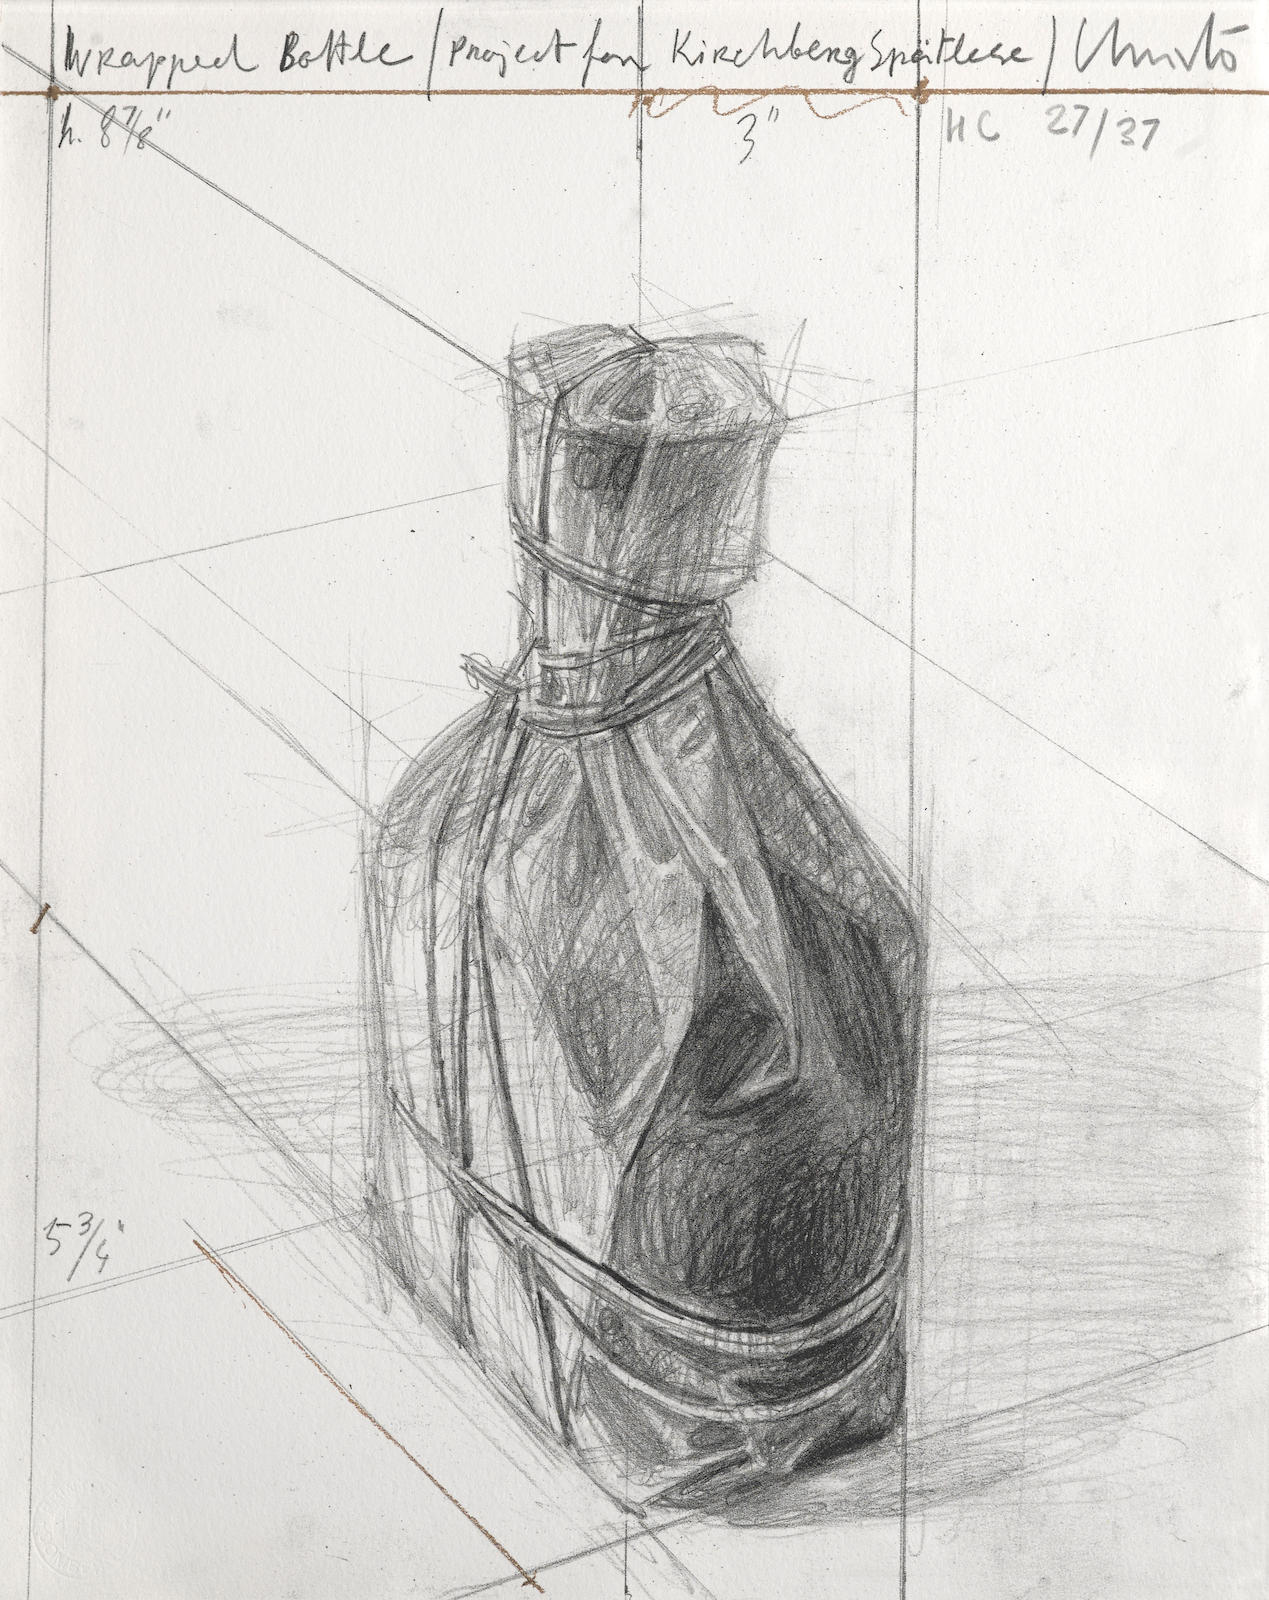 Christo and Jeanne-Claude-Wrapped Bottle, Project, from Homage à Domberger Portfolio (S. & K. 184)-2002